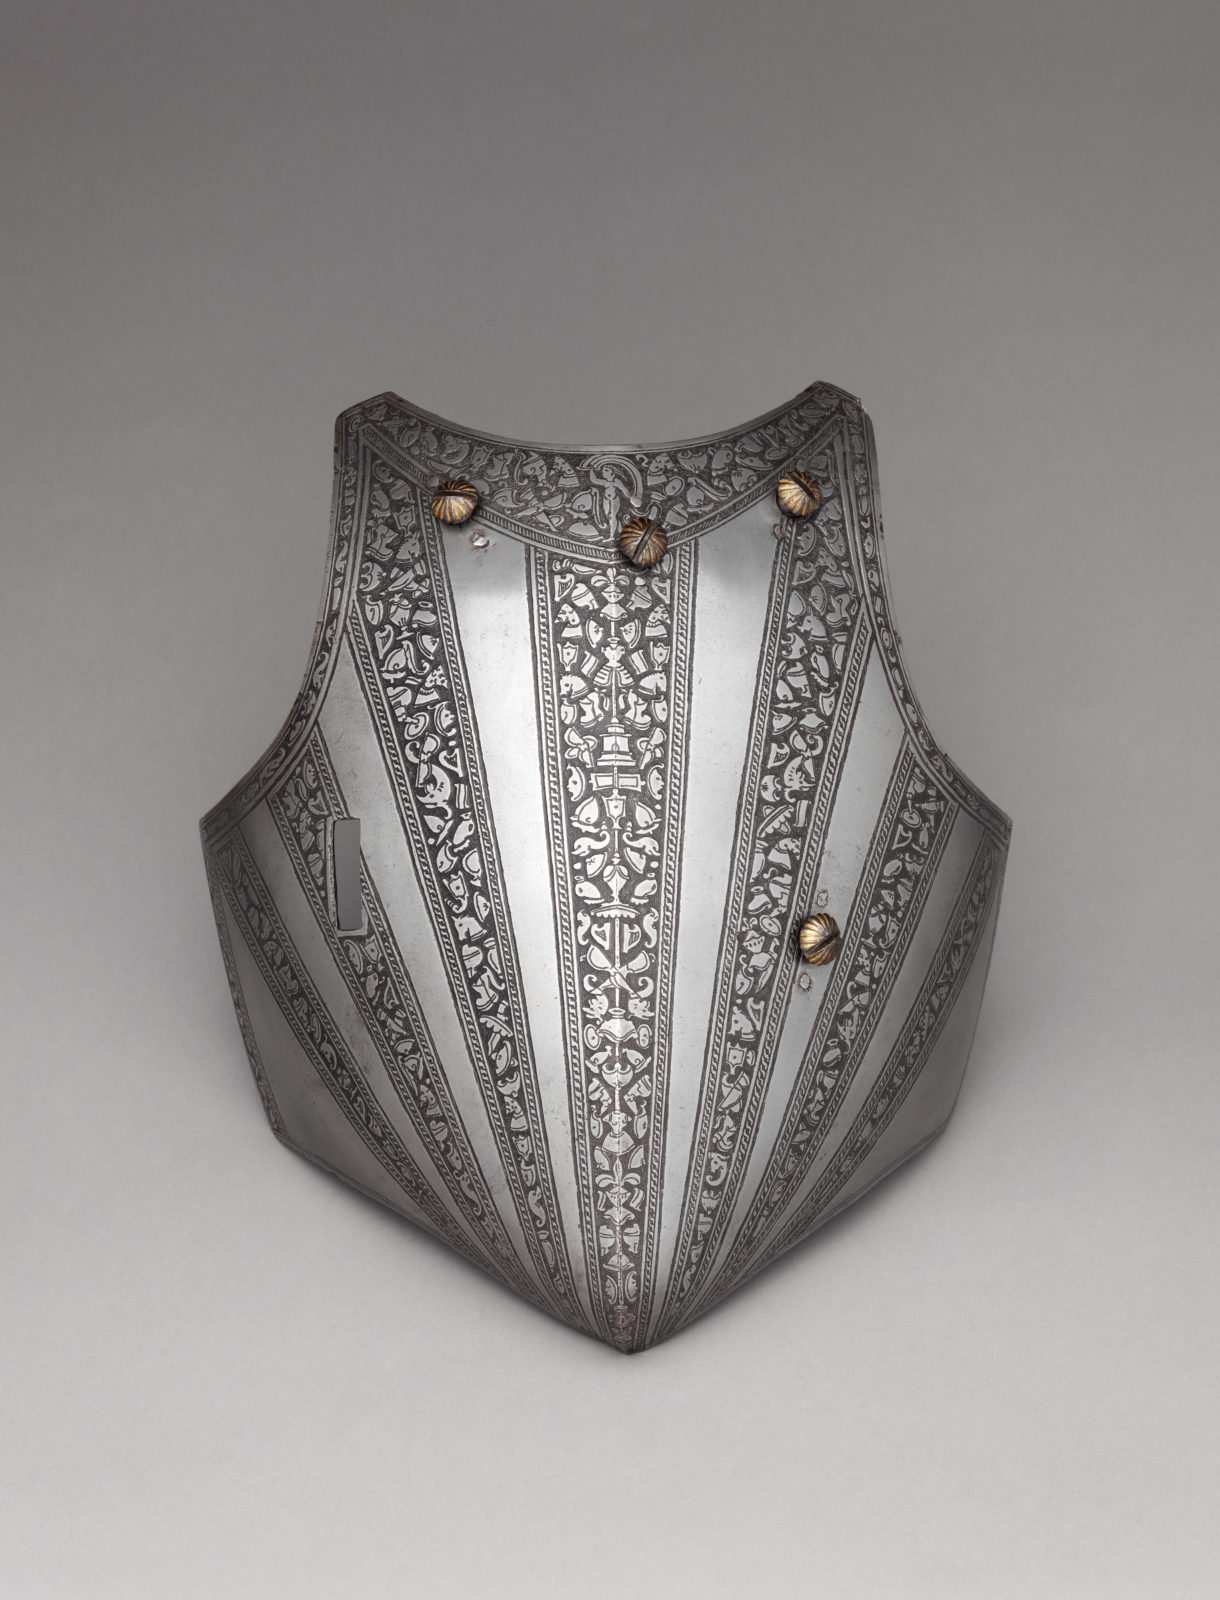 Reinforcing Breastplate, Shoulder Defense, and Buffe (Chin Defense)